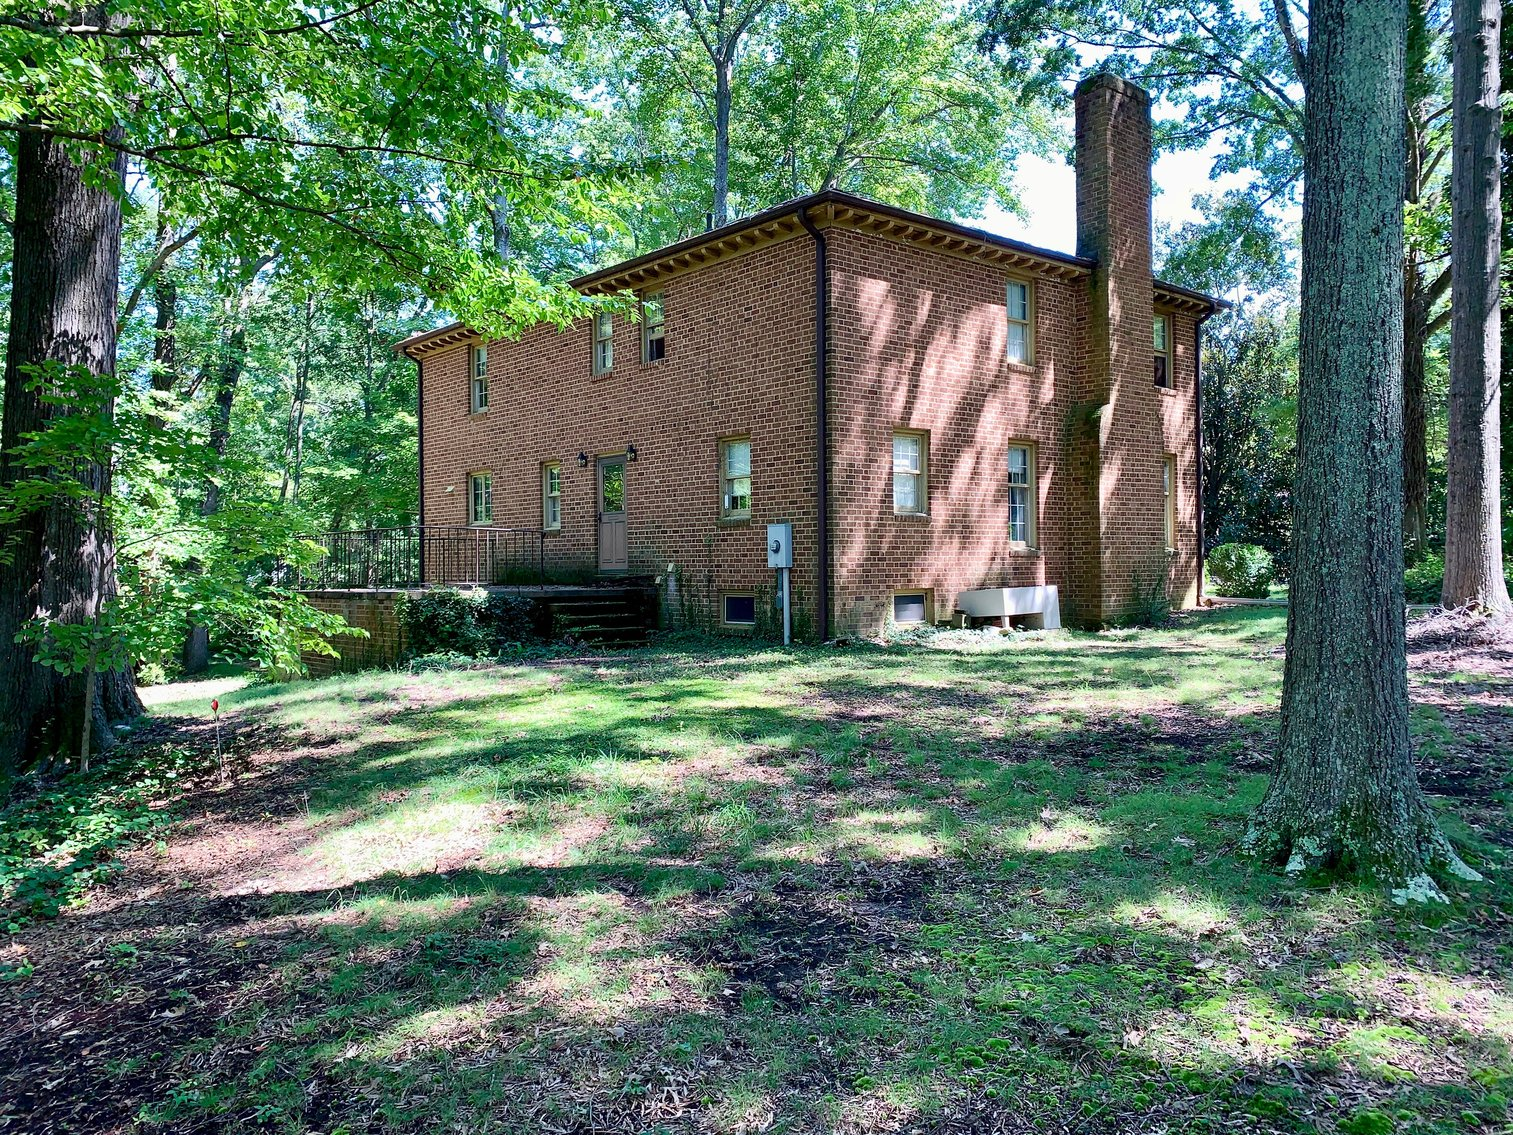 Image for  3 BR/2.5 BA Brick Home on 2.1 +/- Acres Only Minutes from NSWC Dahlgren-- SELLS to the HIGHEST BIDDER!!